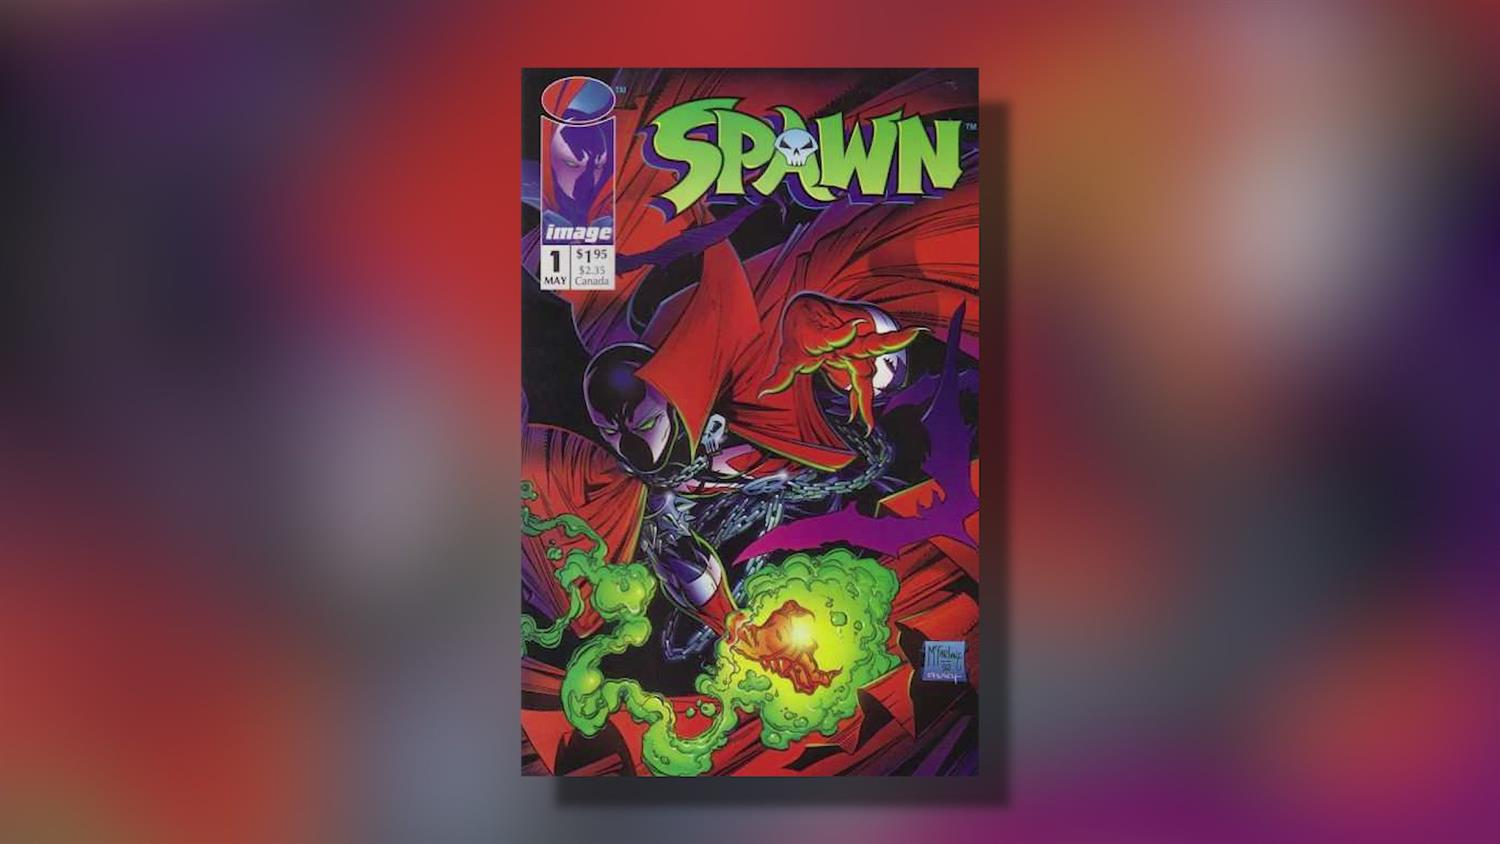 Todd McFarlane on Why He Will Never Renumber Spawn